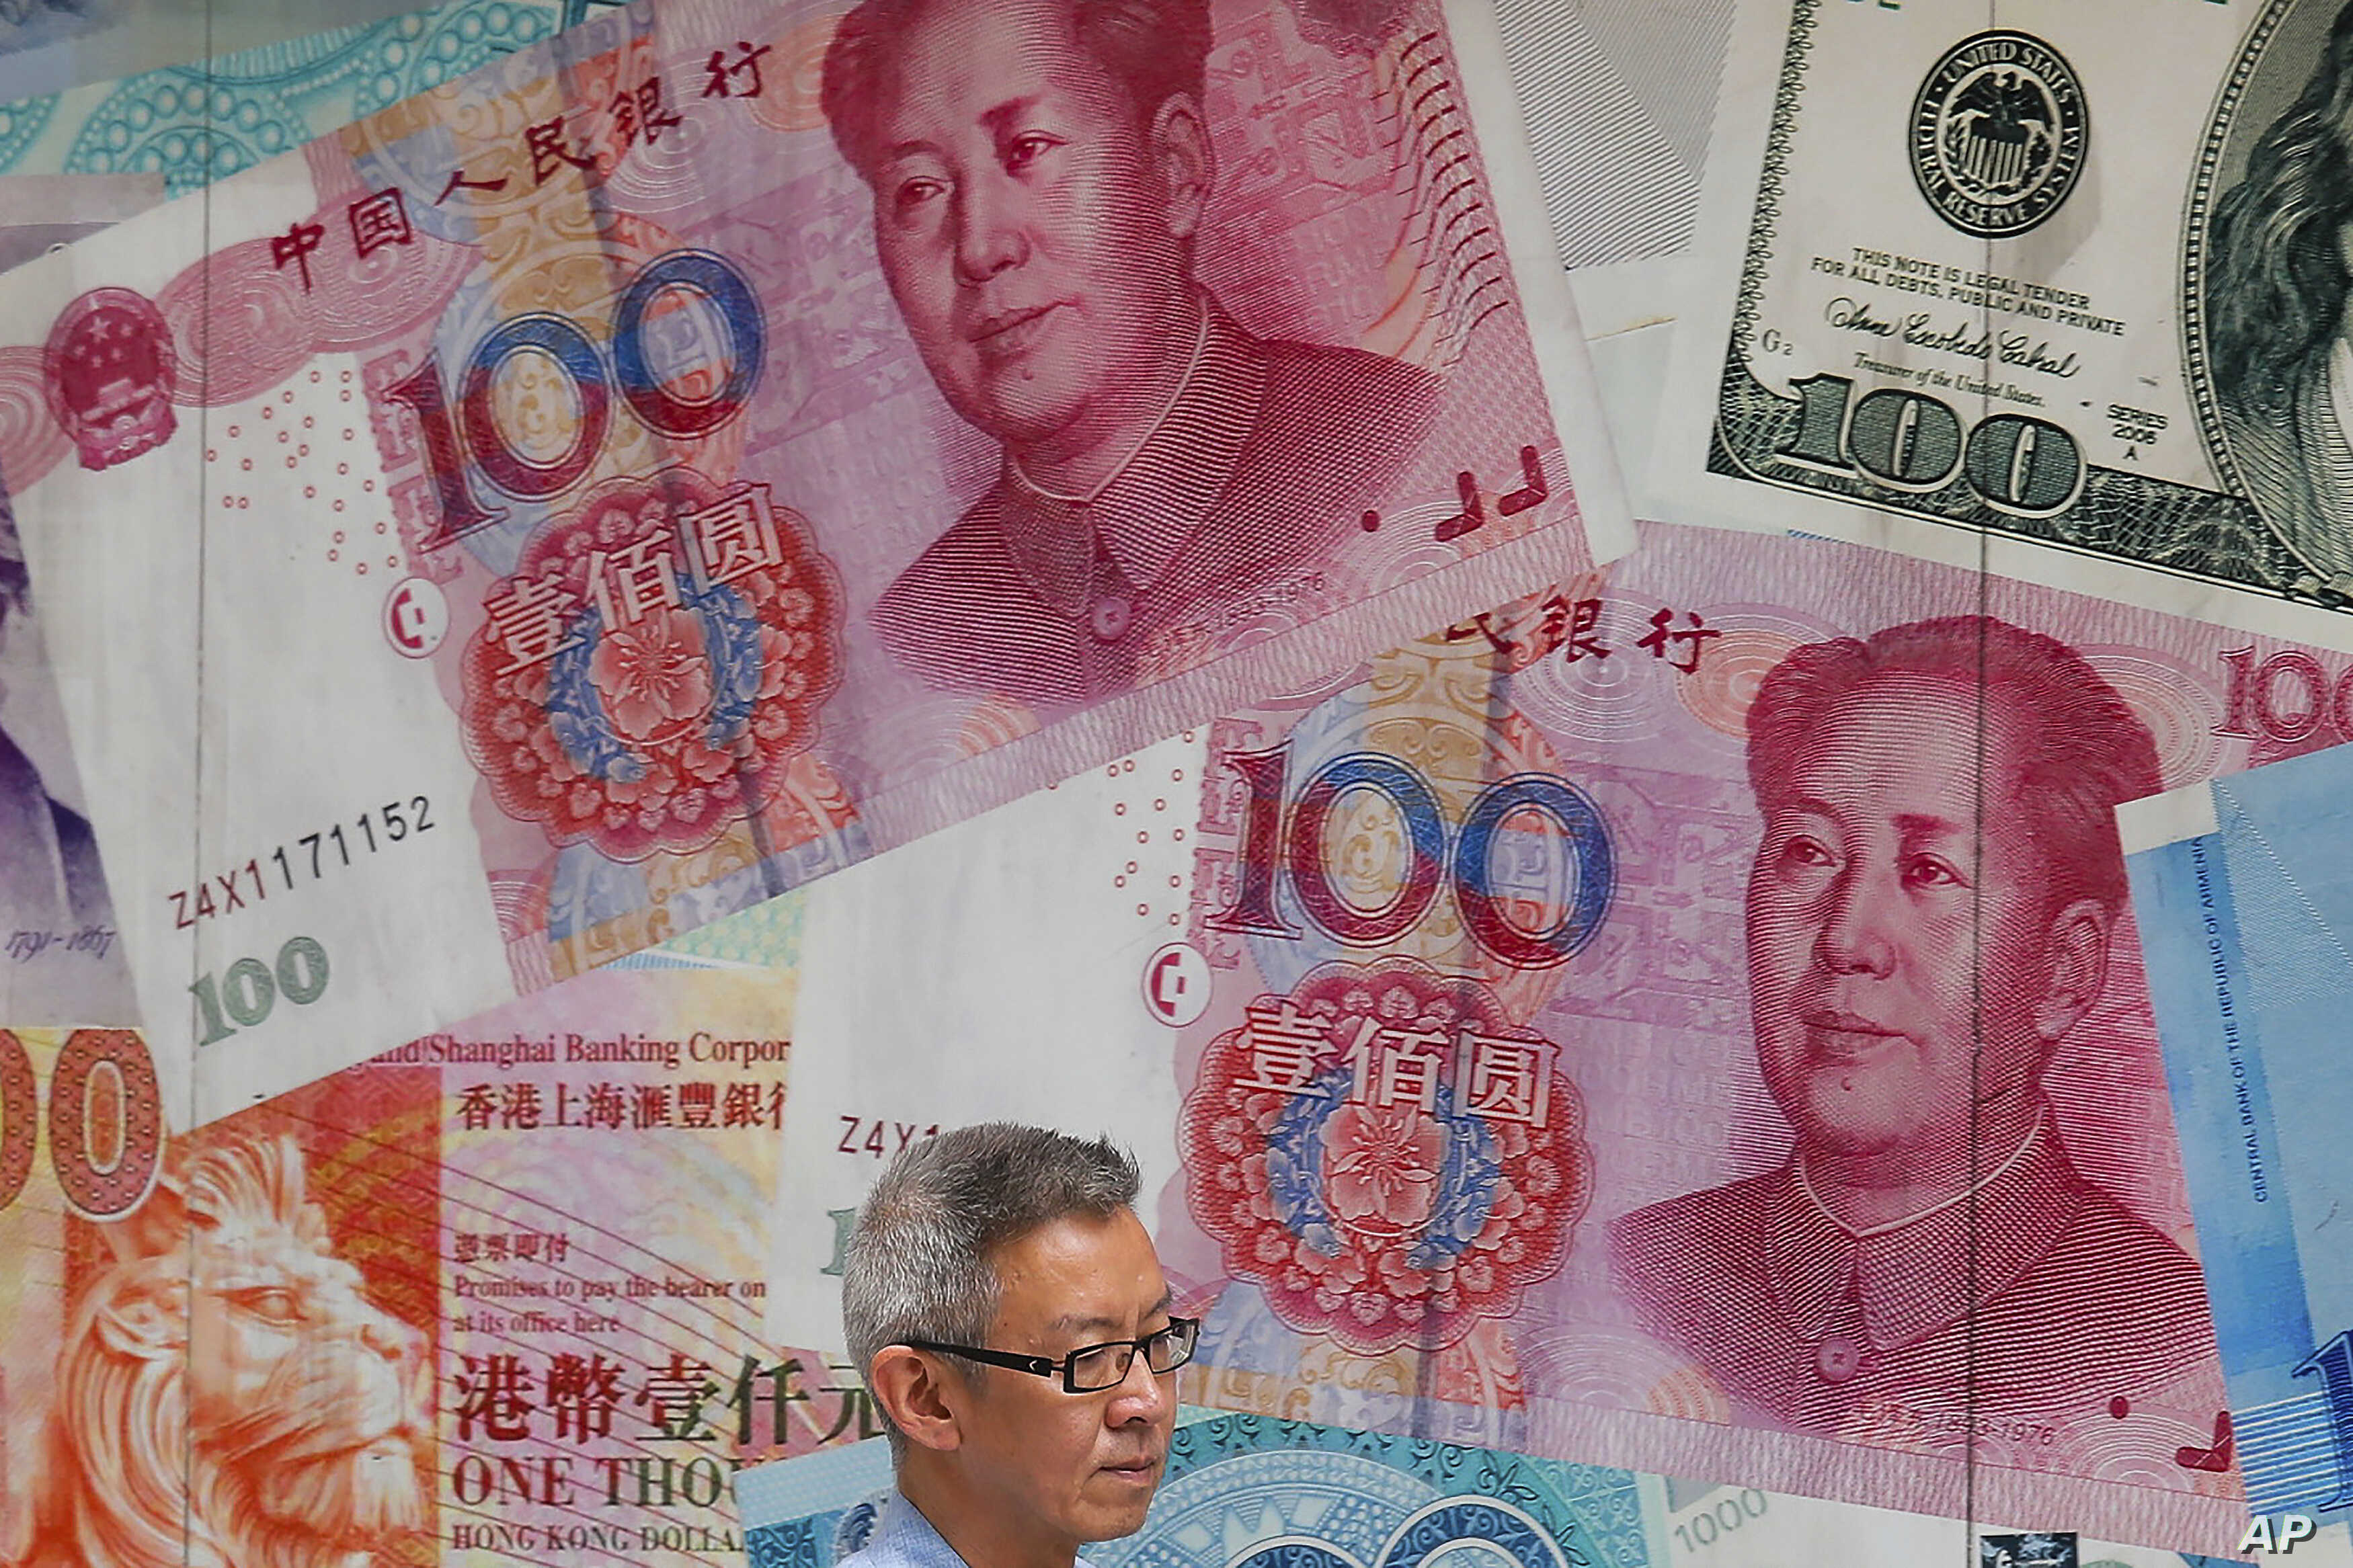 China's Digital Currency Takes Shape; Will It Challenge Dollar?